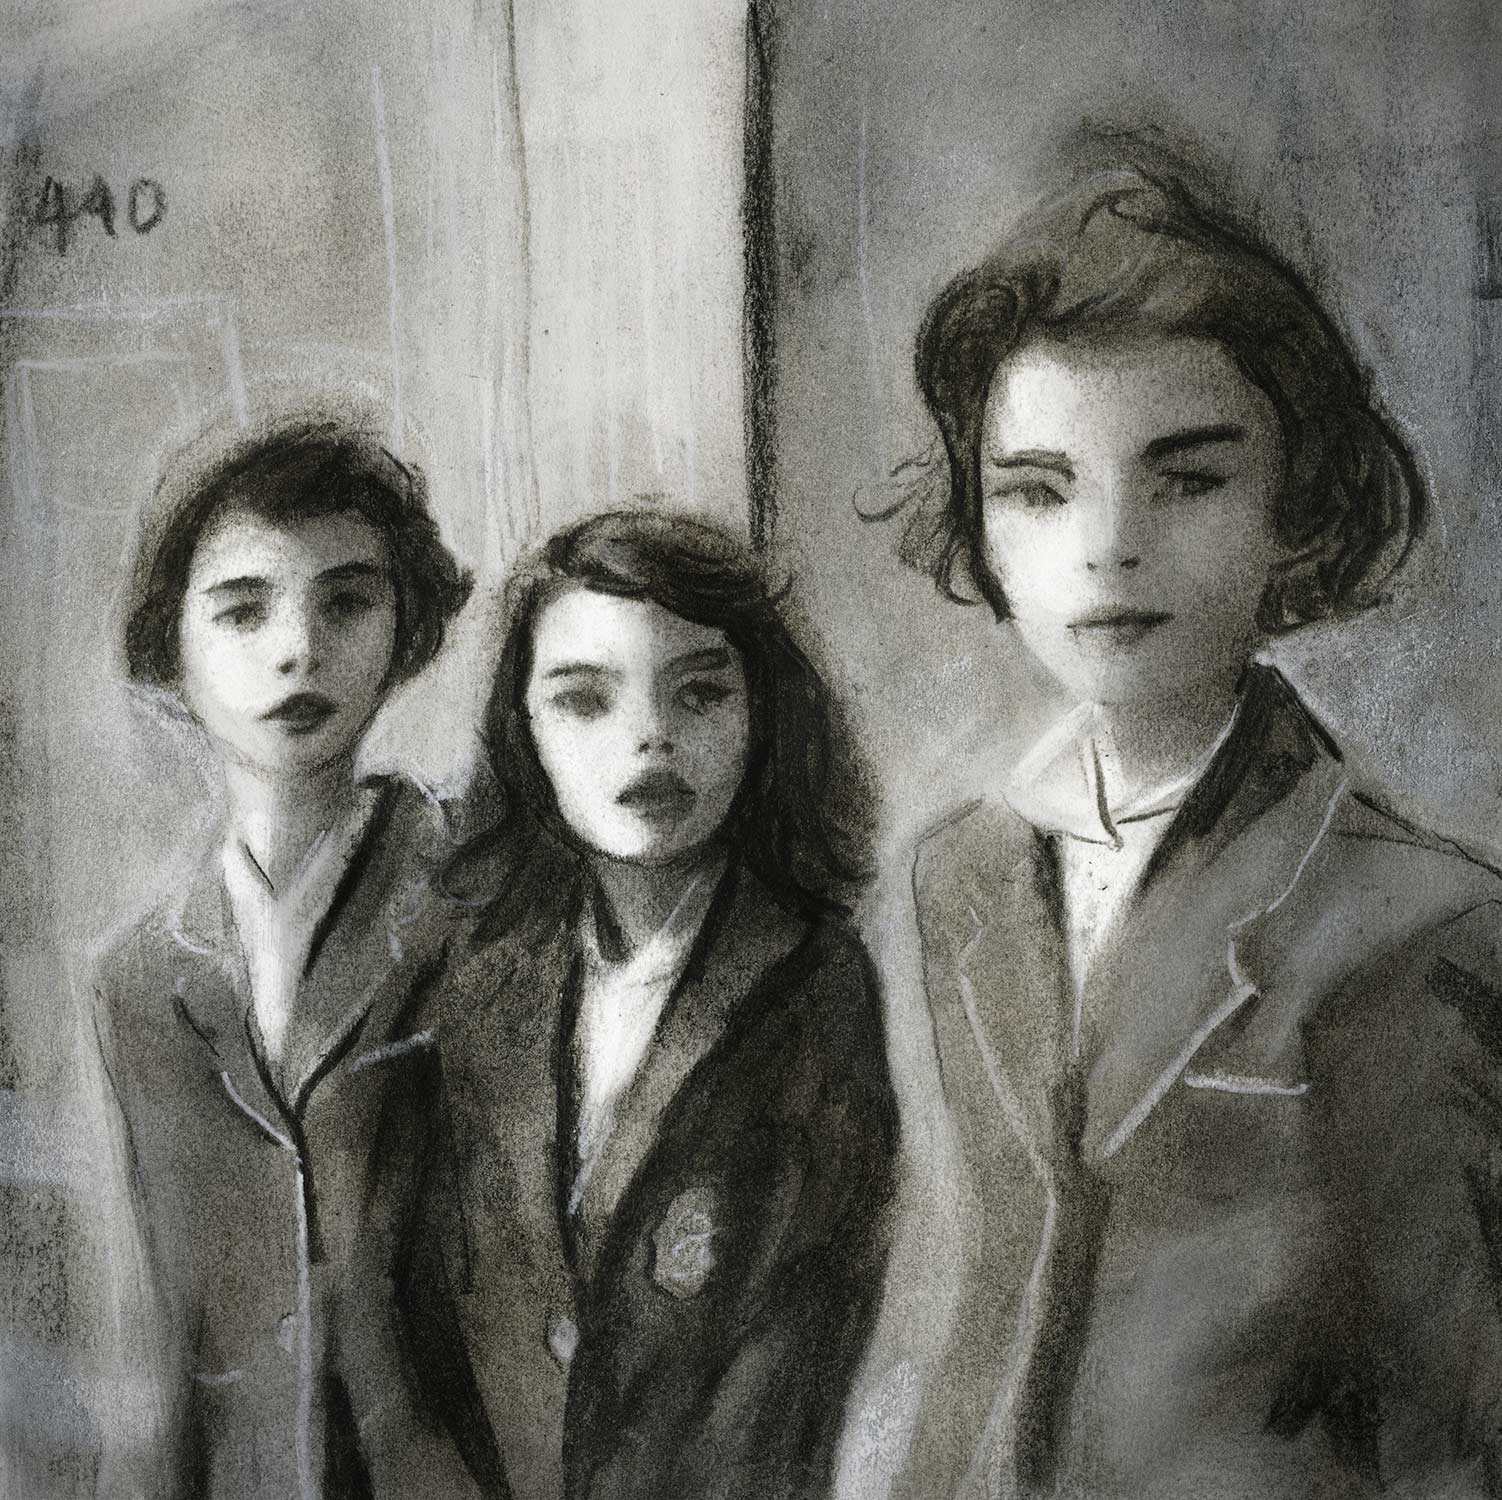 Charcoal Sketch of 3 school girls from the 1940s life magazine